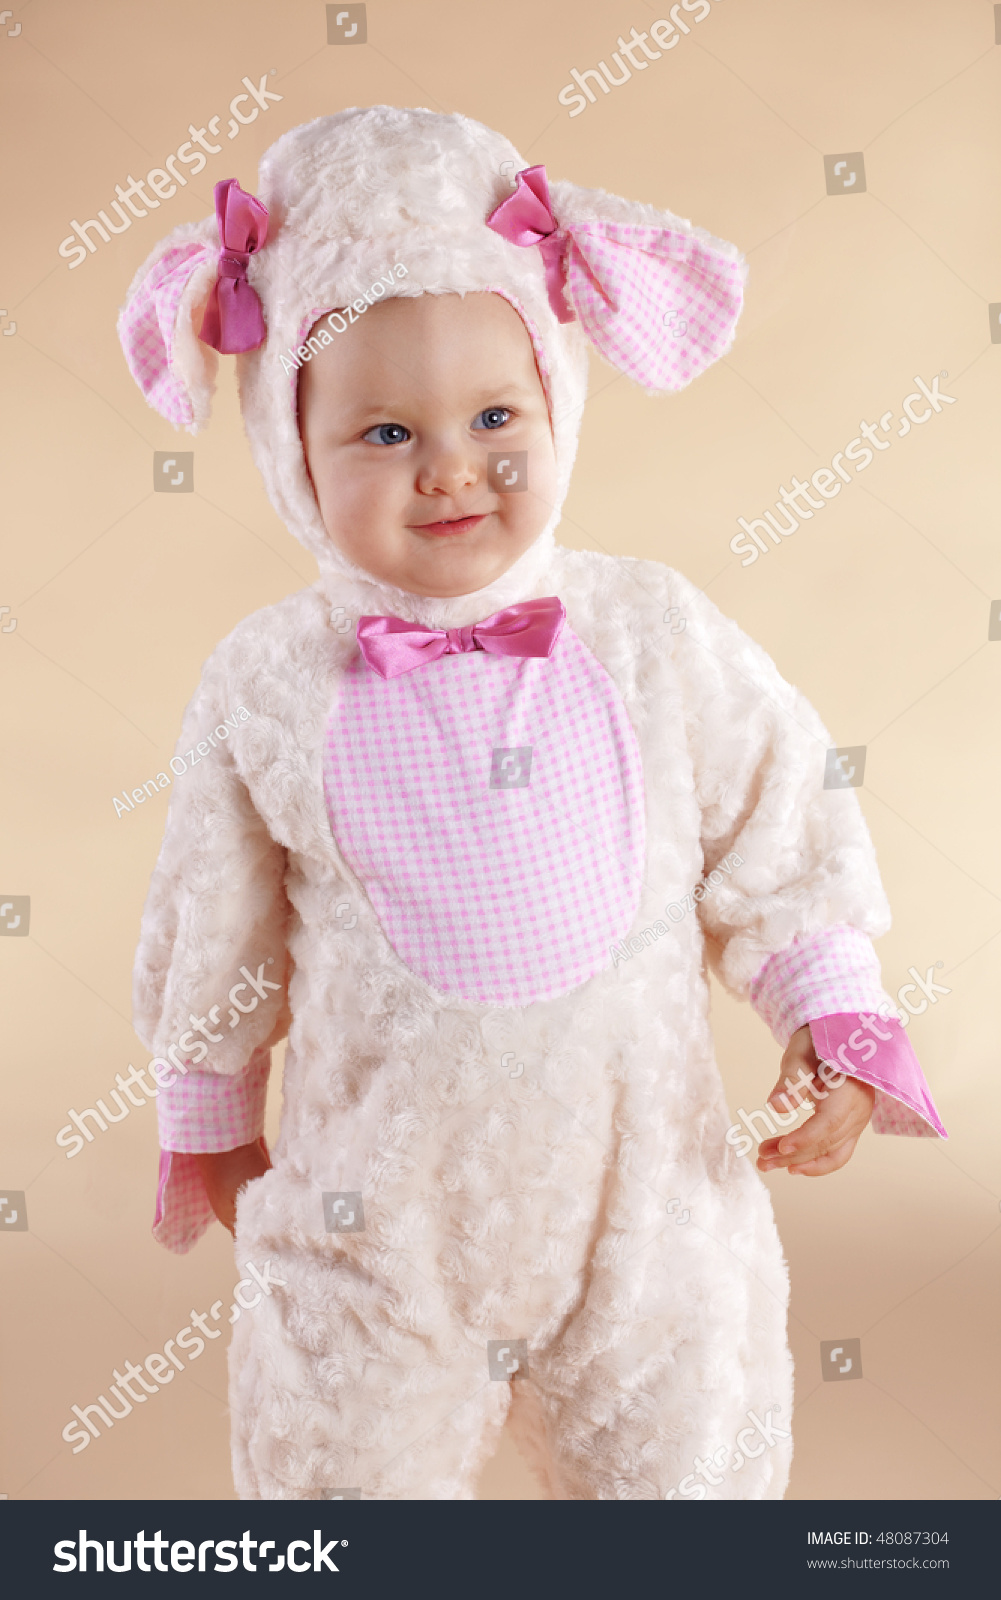 very cute baby wearing sheep costume stock photo (100% legal